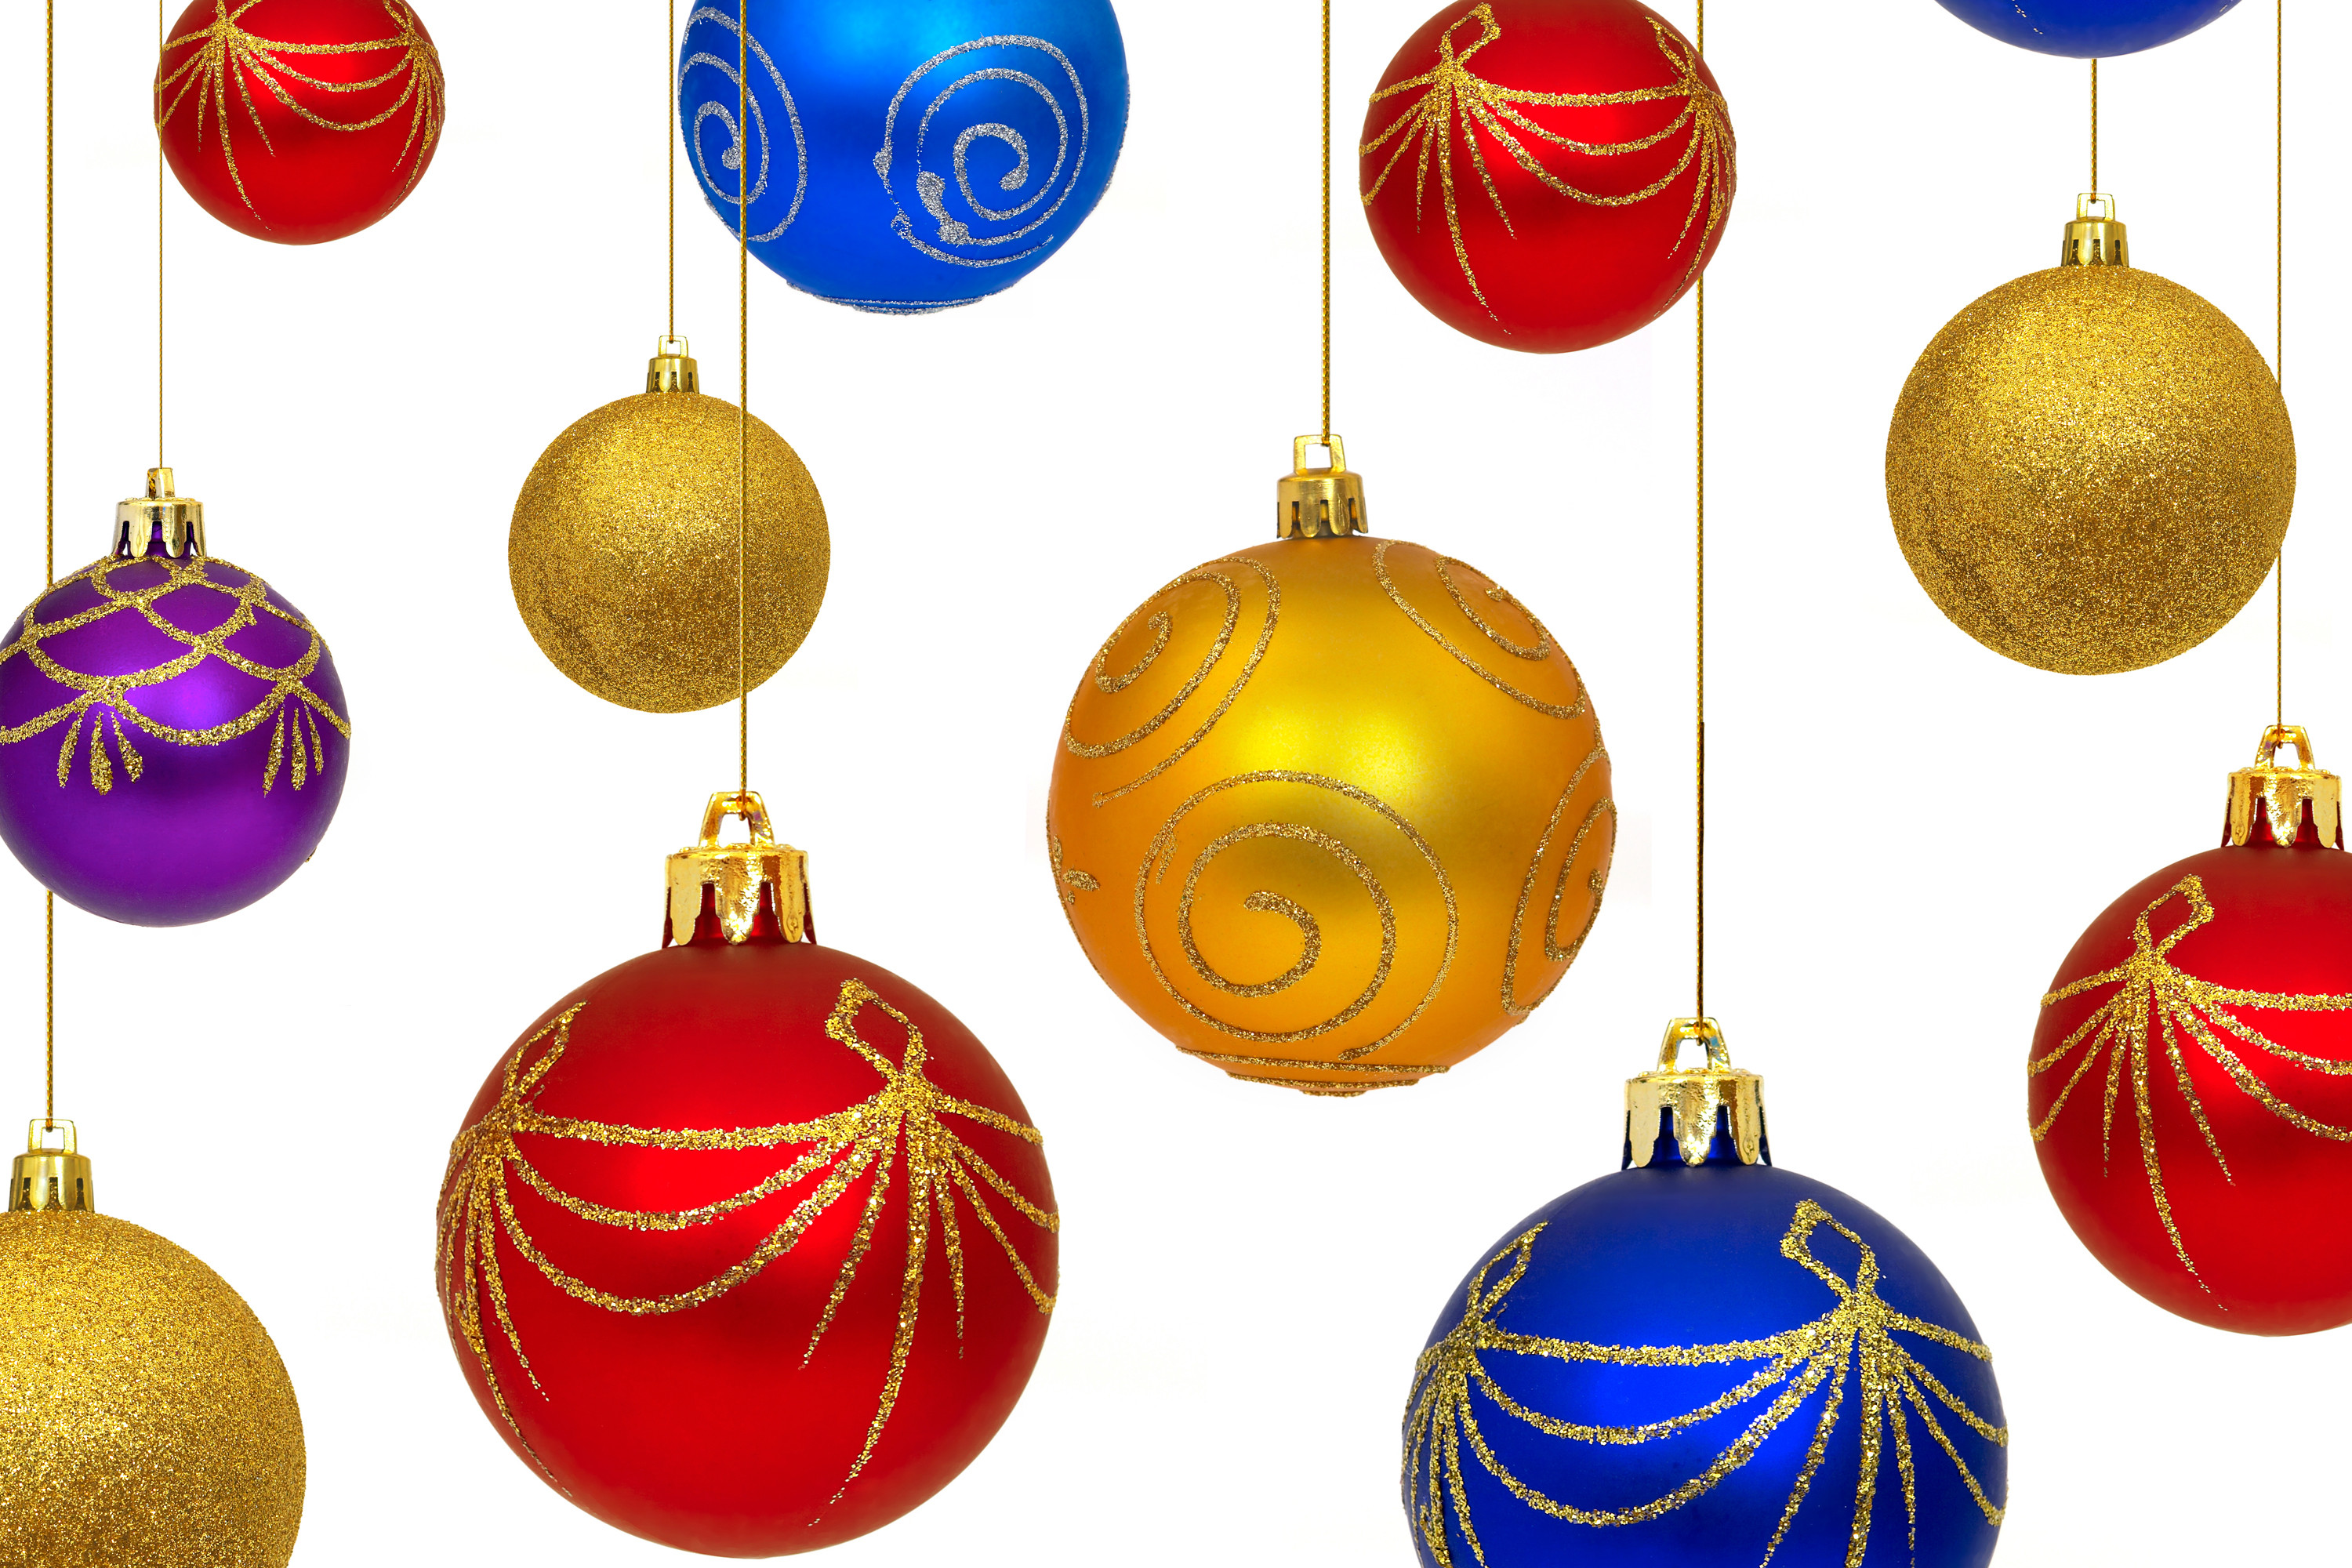 Christmas Ball ornaments Luxury 5 Random Facts You Didn't Know About ornaments Of Charming 42 Pictures Christmas Ball ornaments